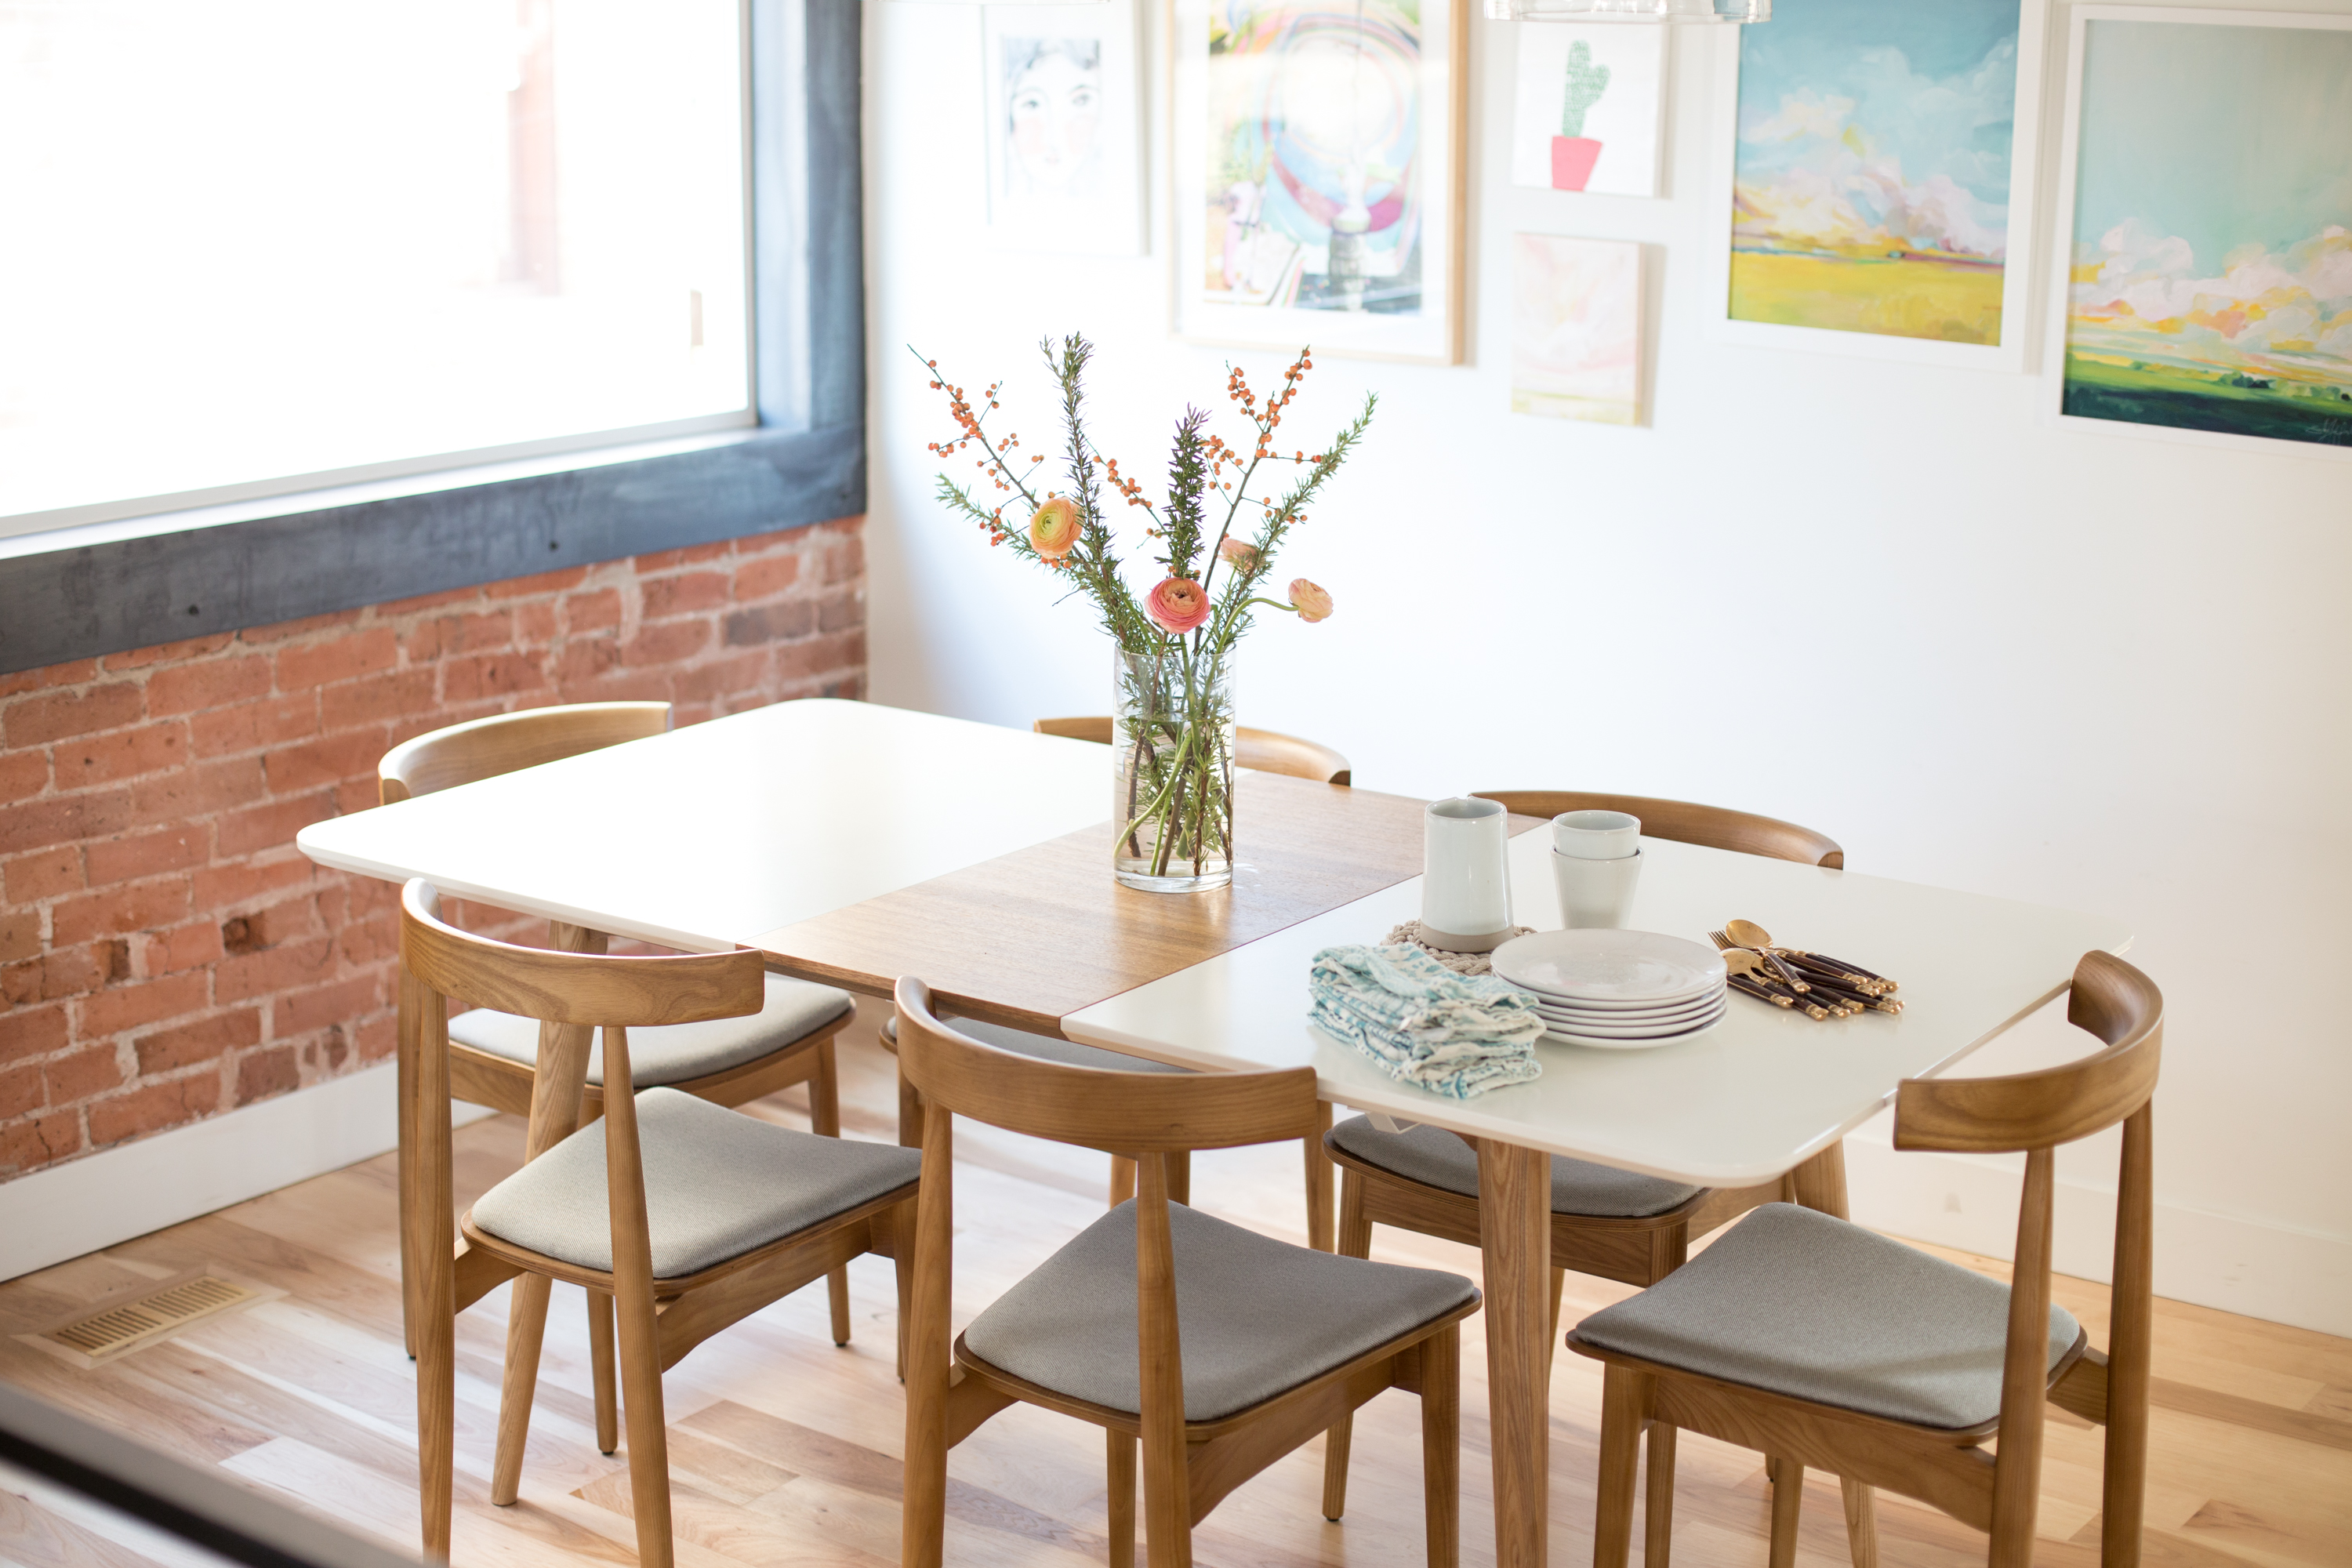 Marvelous Mid Century Modern Dining Table and Chairs Rove Concepts